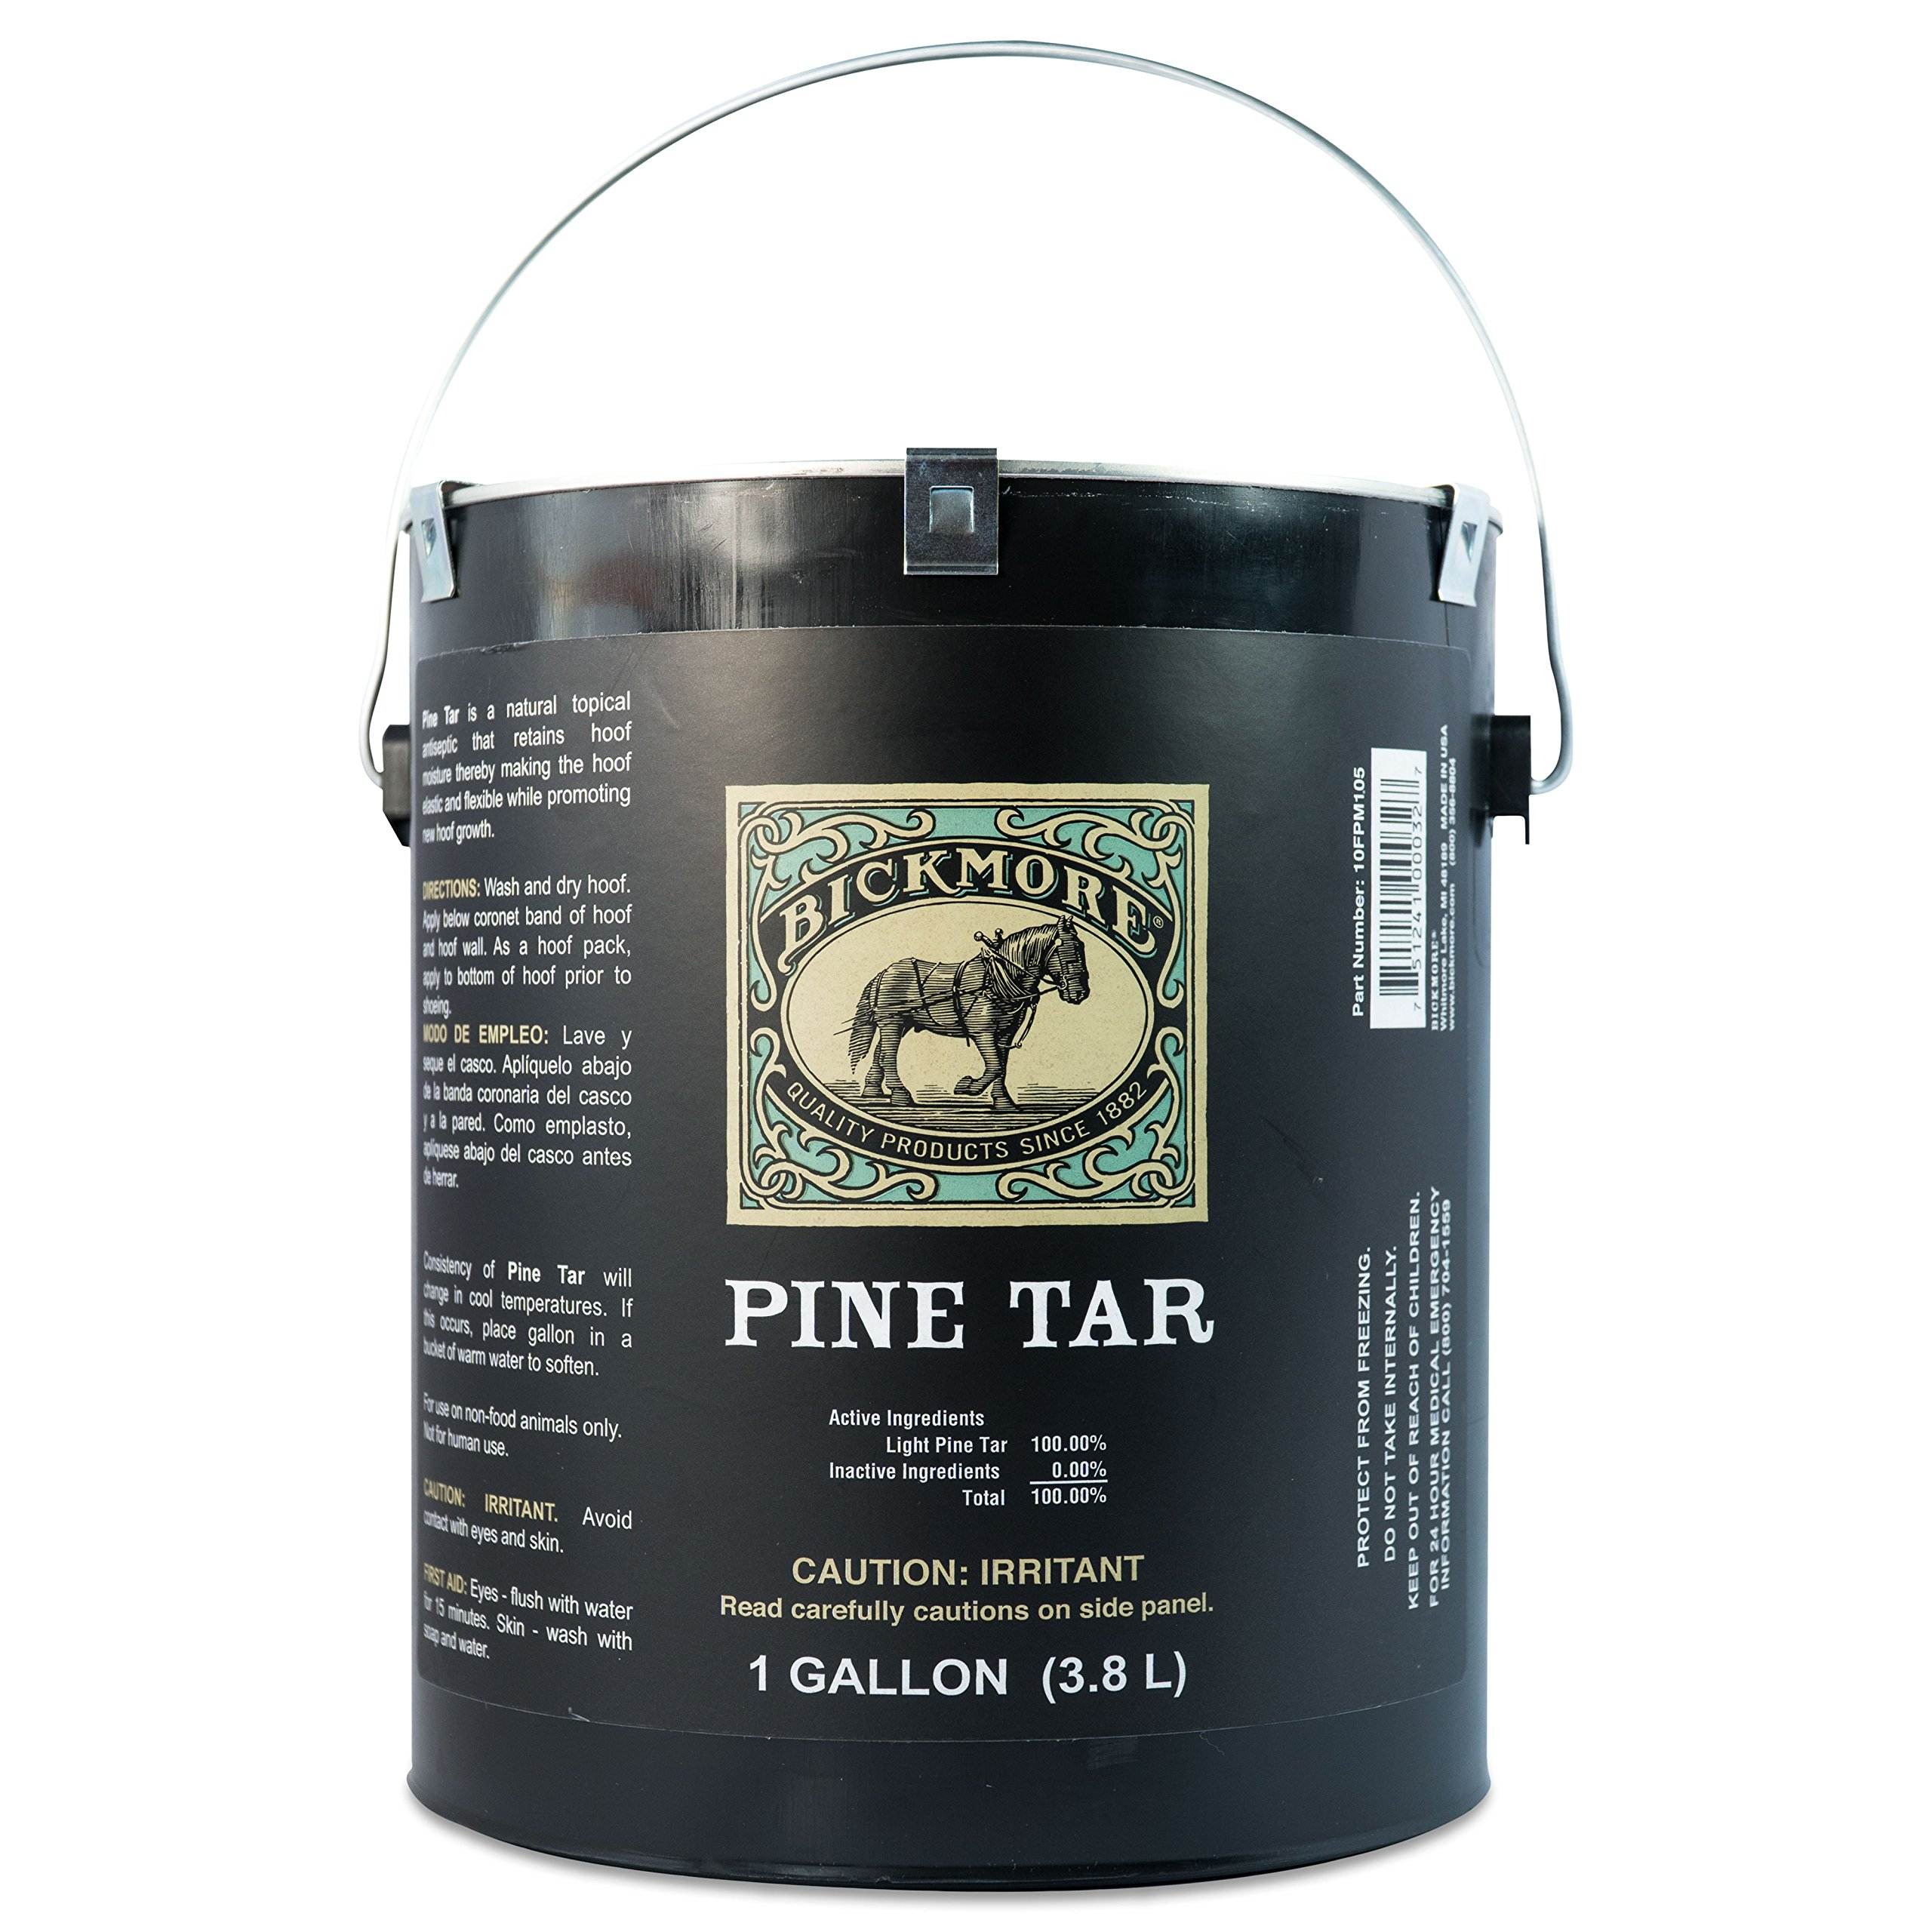 Bickmore Pine Tar 1 Gallon - Hoof Care Formula For Horses by Bickmore